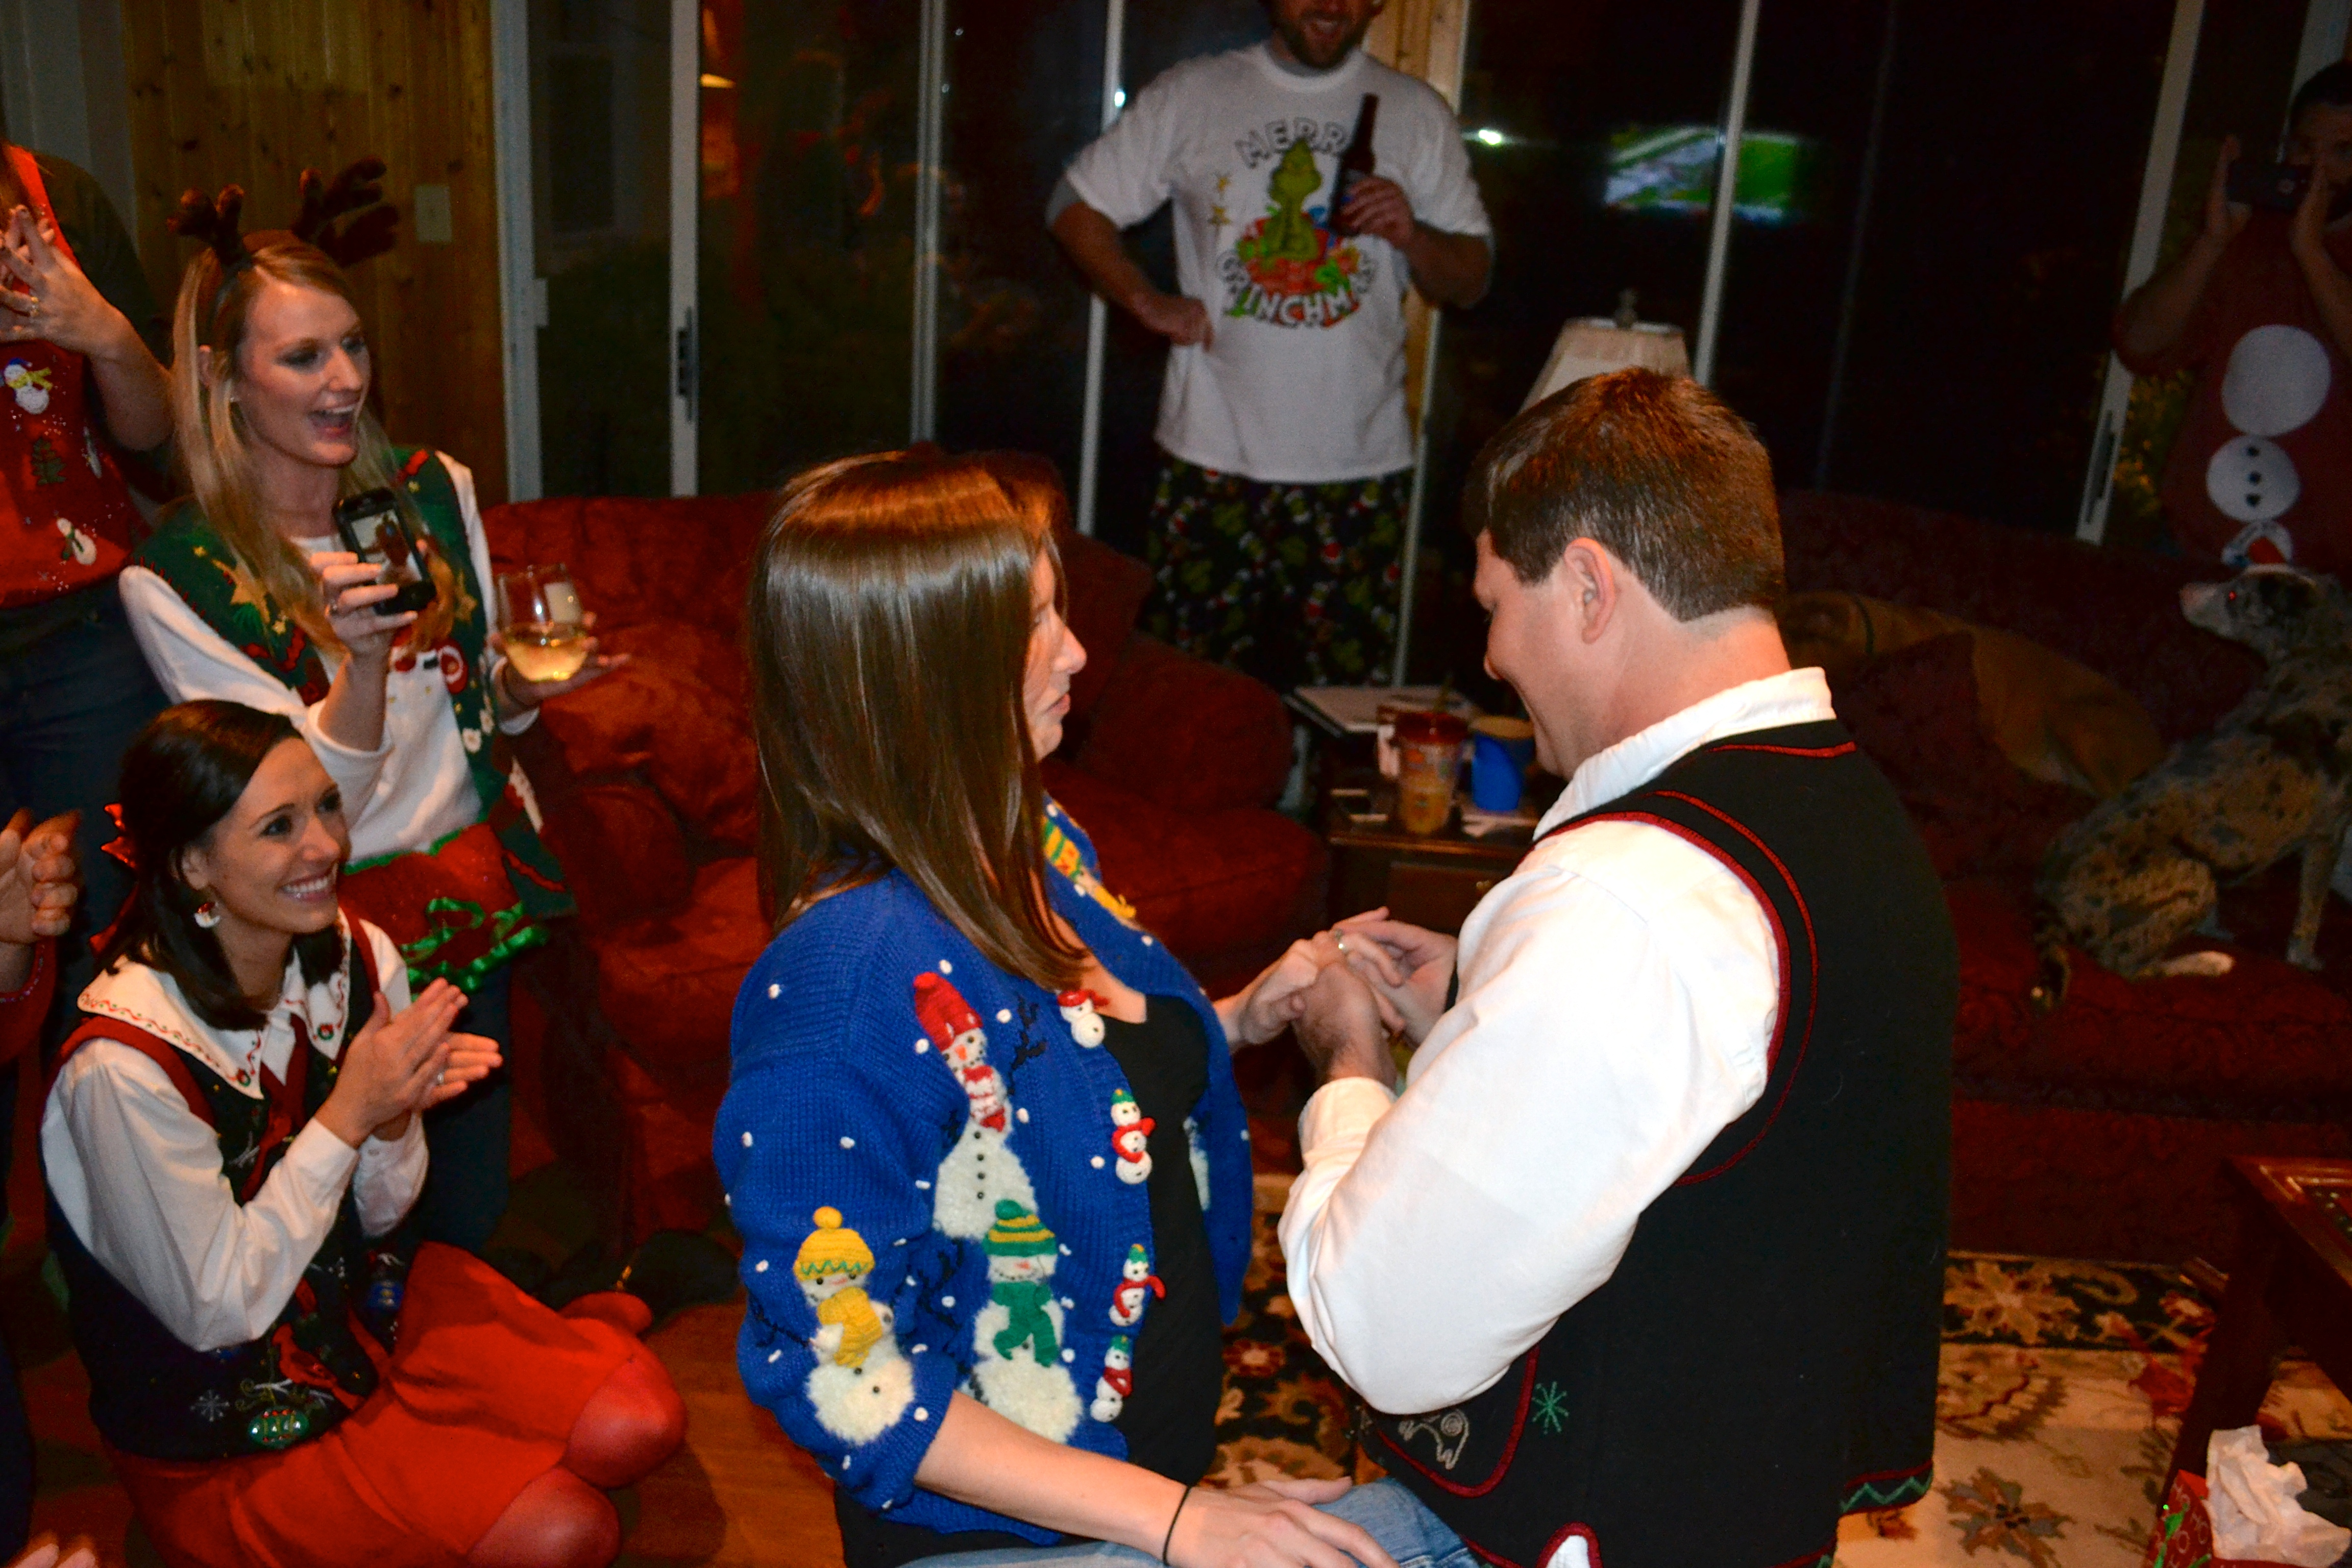 Image 4 of Meredith and Josh | Christmas Party Proposal